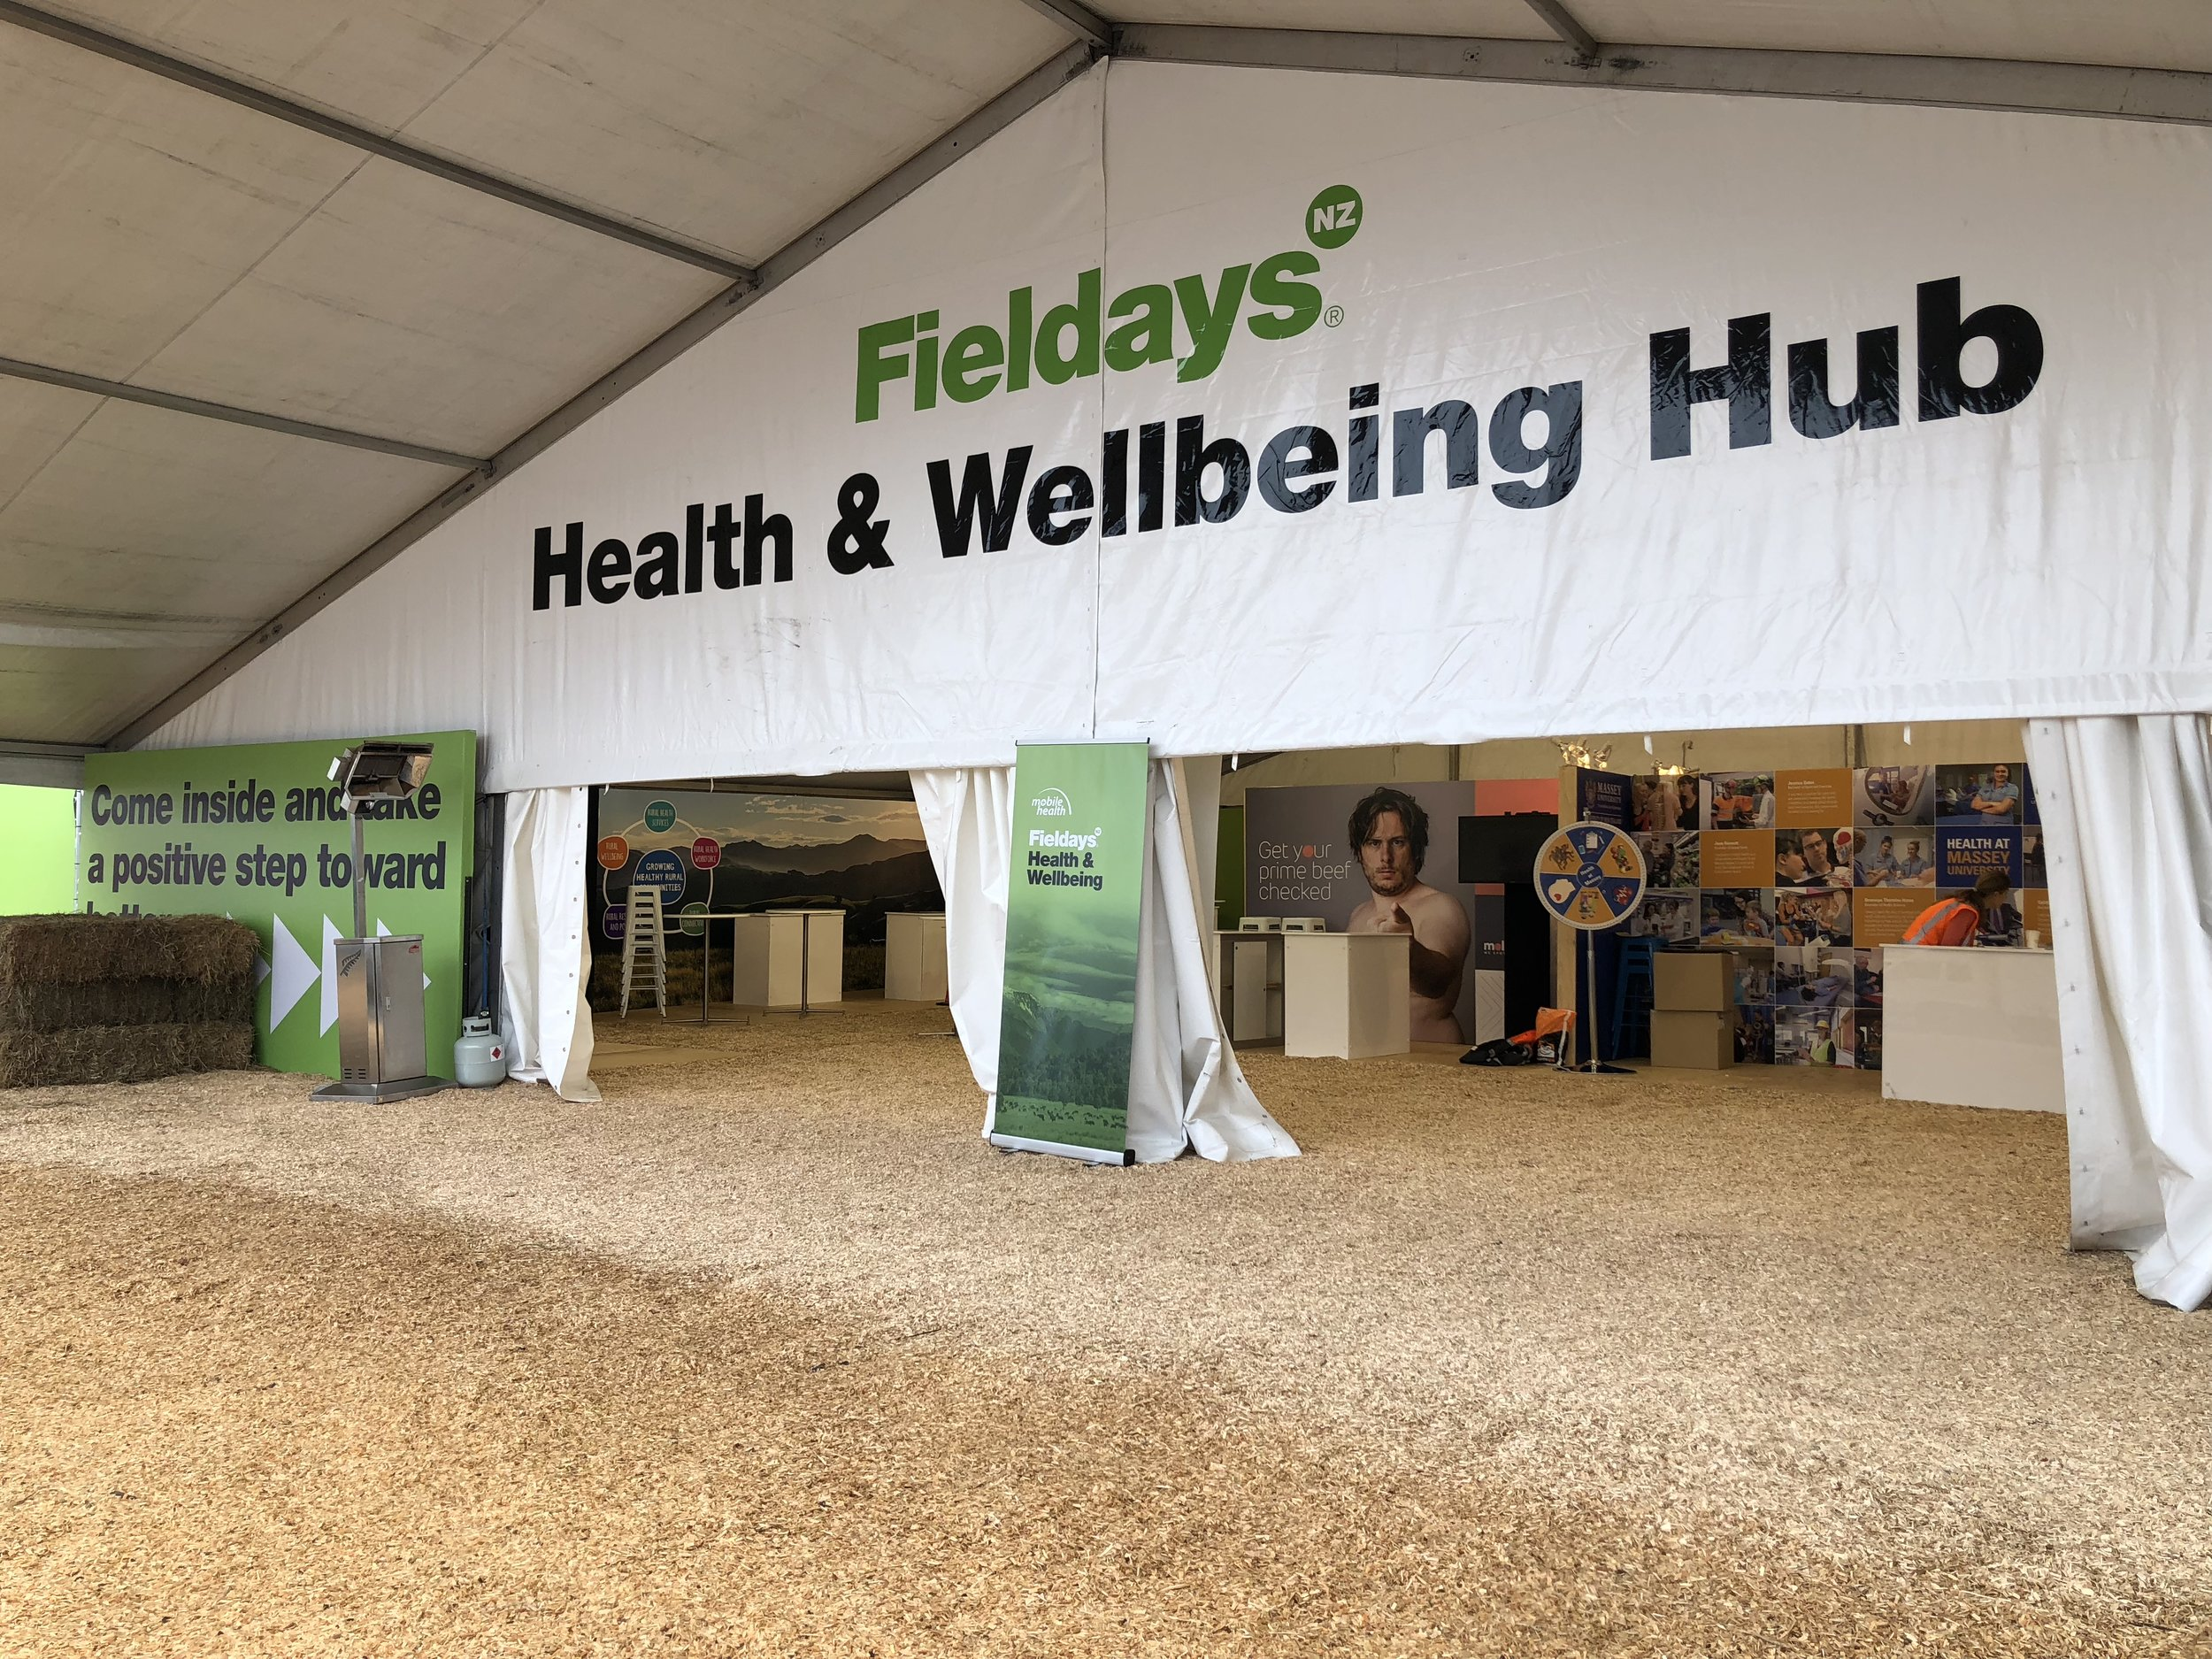 Health and Wellbeing Hub - Fieldays have teamed up with Mobile Health and Massey's College of Health to offer a range of nutrition and showcase innovative and lifesaving services Mobile Health are providing communities.Find them: E Street next to Careers and Education Hub